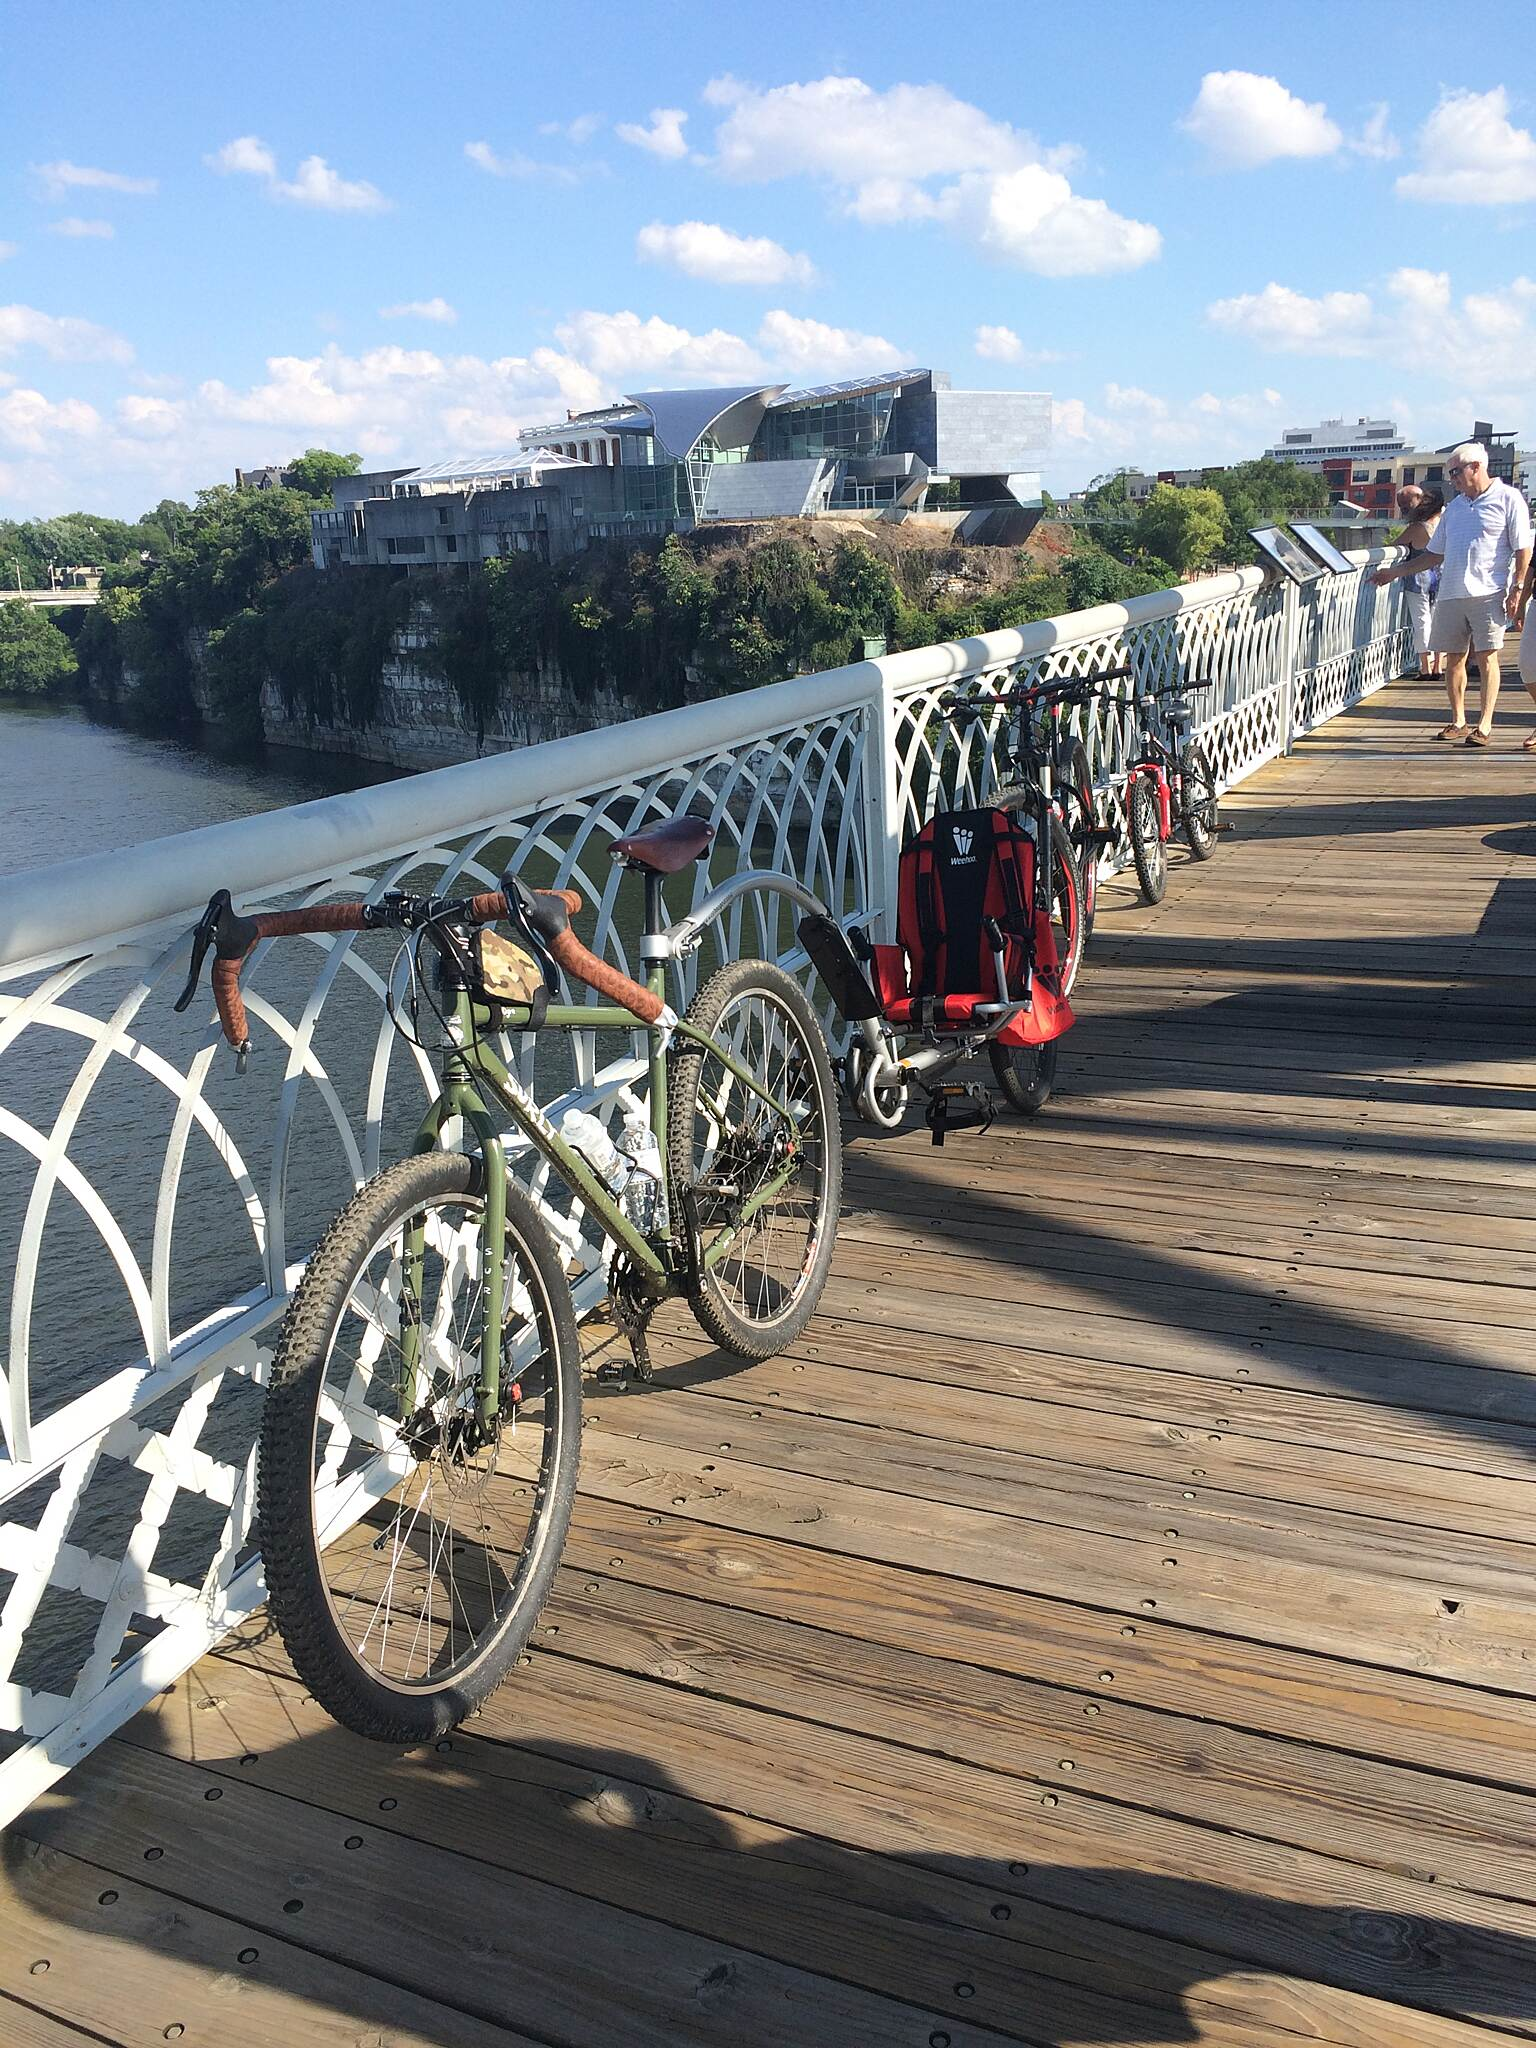 Chattanooga Riverwalk (Tennessee Riverpark) beautiful views